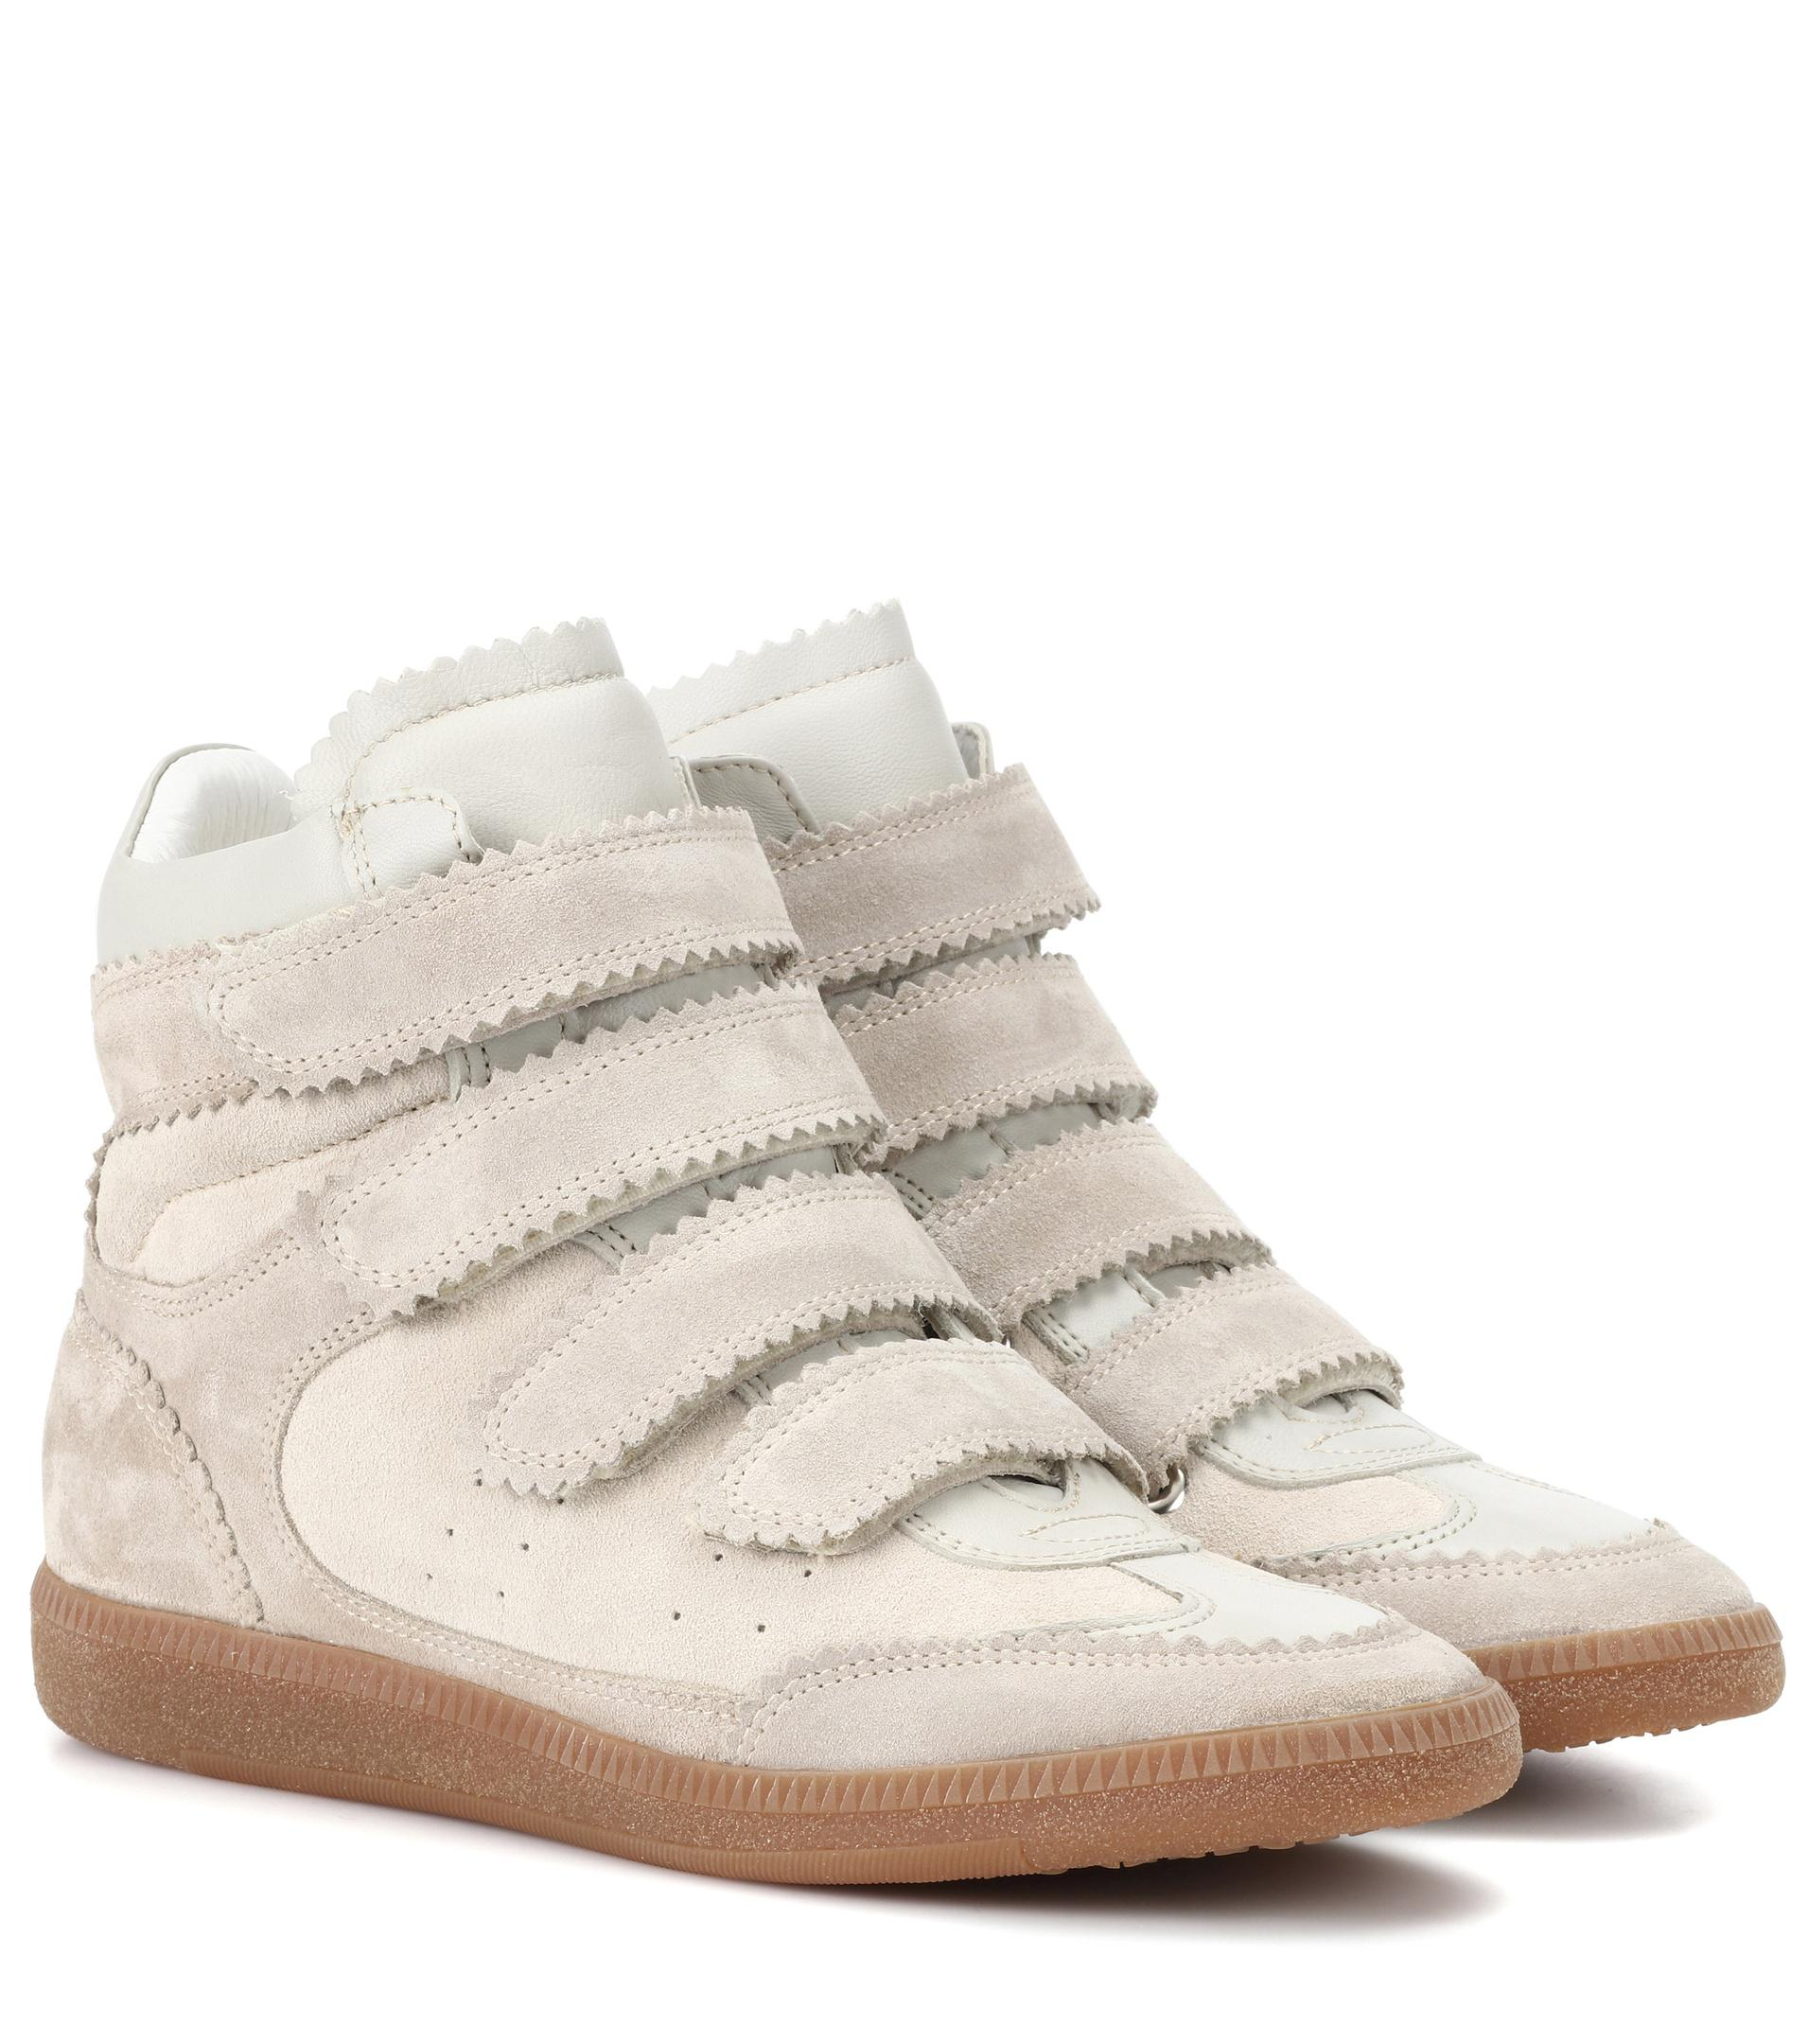 Isabel Marant Bilsy suede high-top sneakers big sale sale online geniue stockist online for sale wholesale price 8AZIy